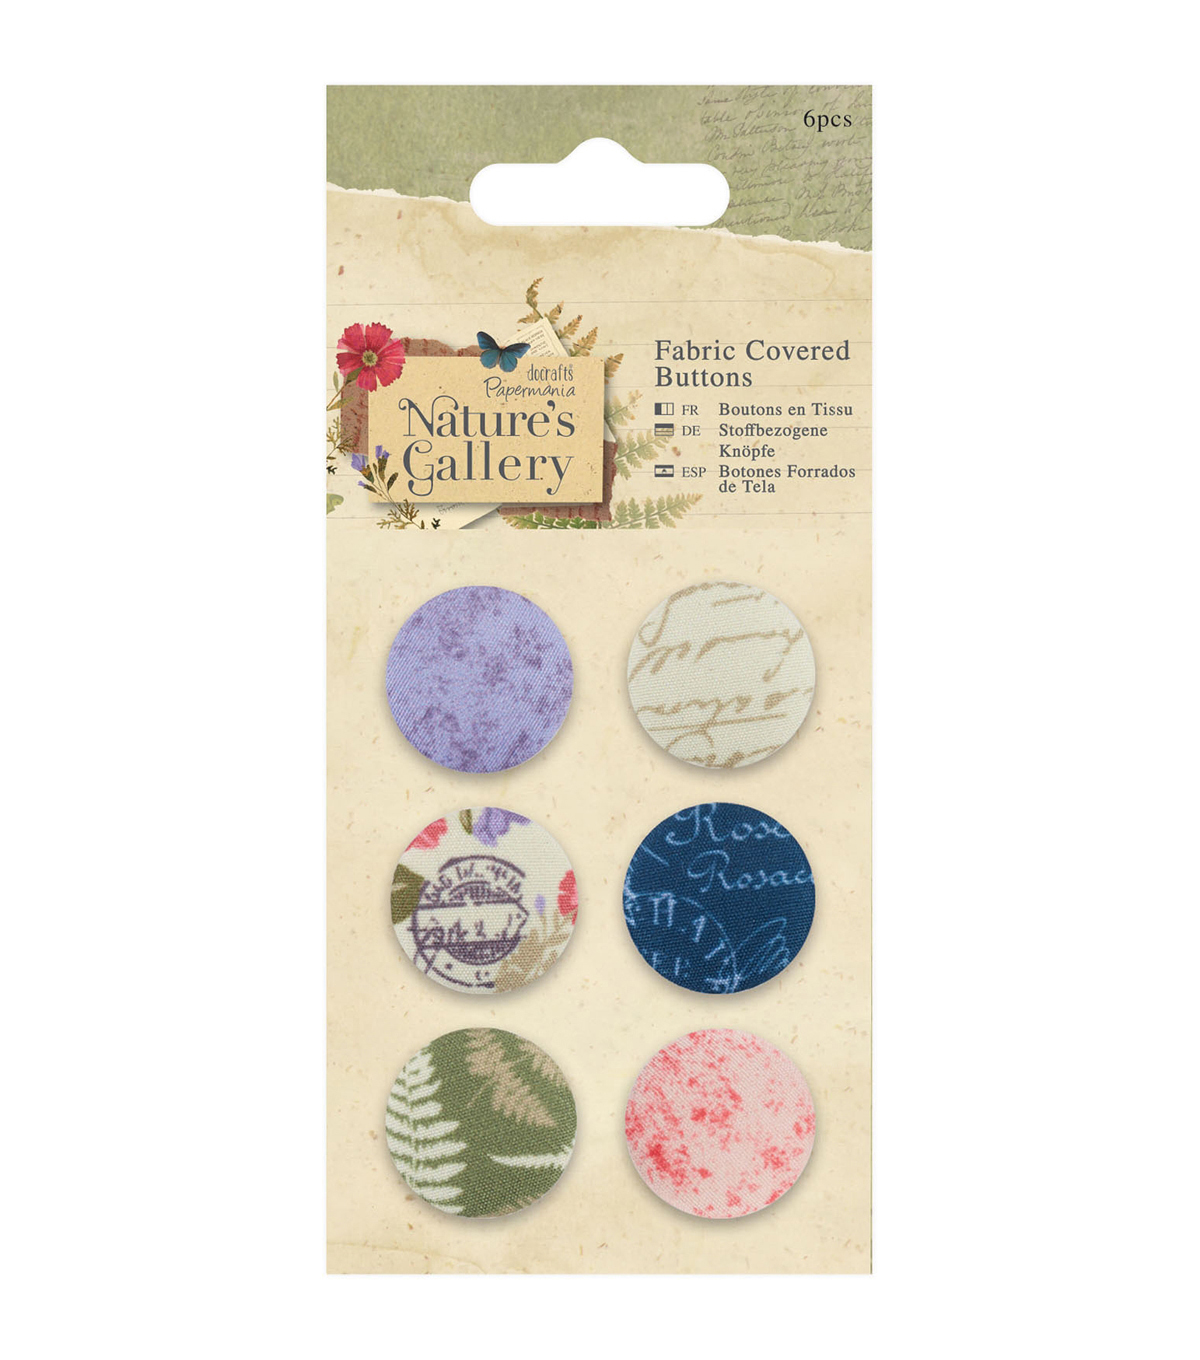 Papermania Nature\u0027s Gallery 6pcs Fabric Covered Buttons